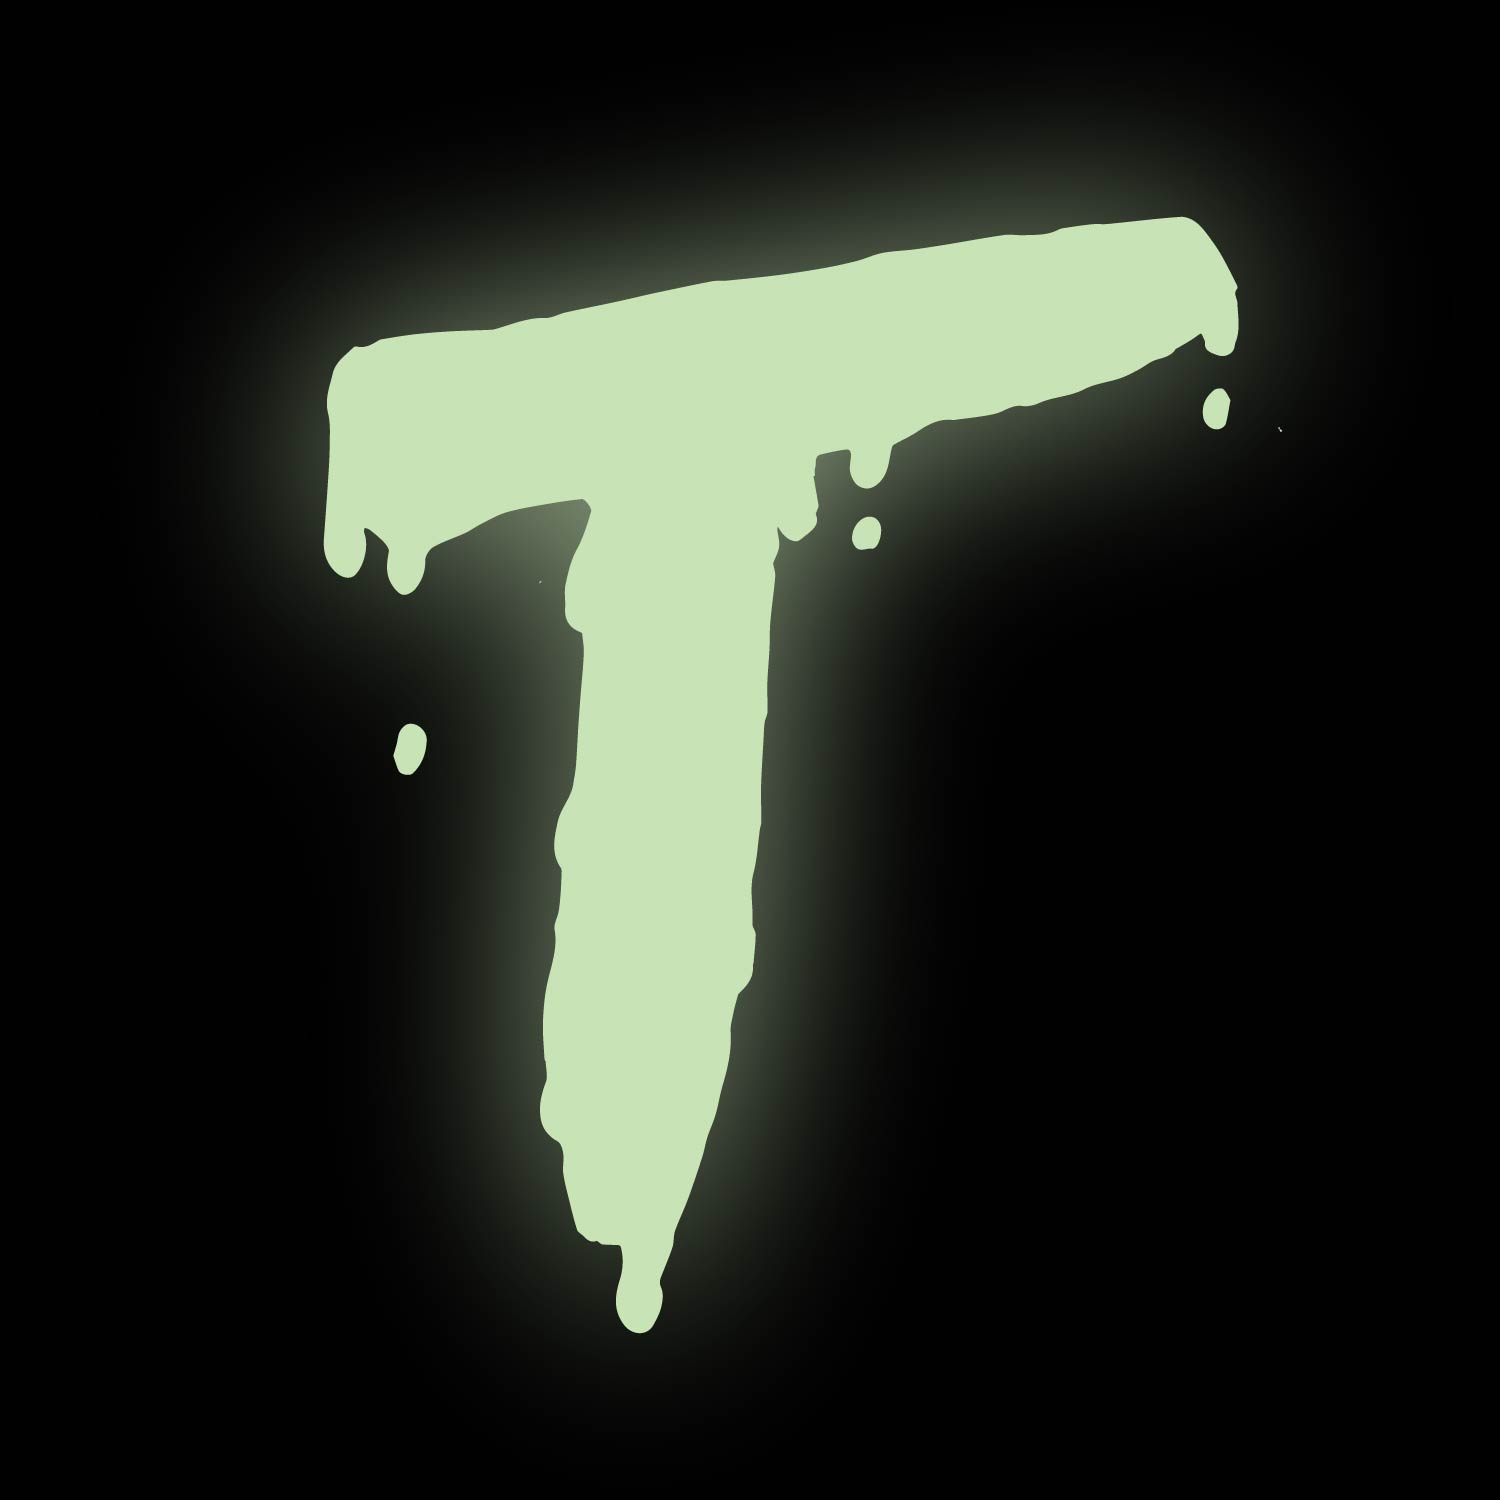 dripping and glowing letter T